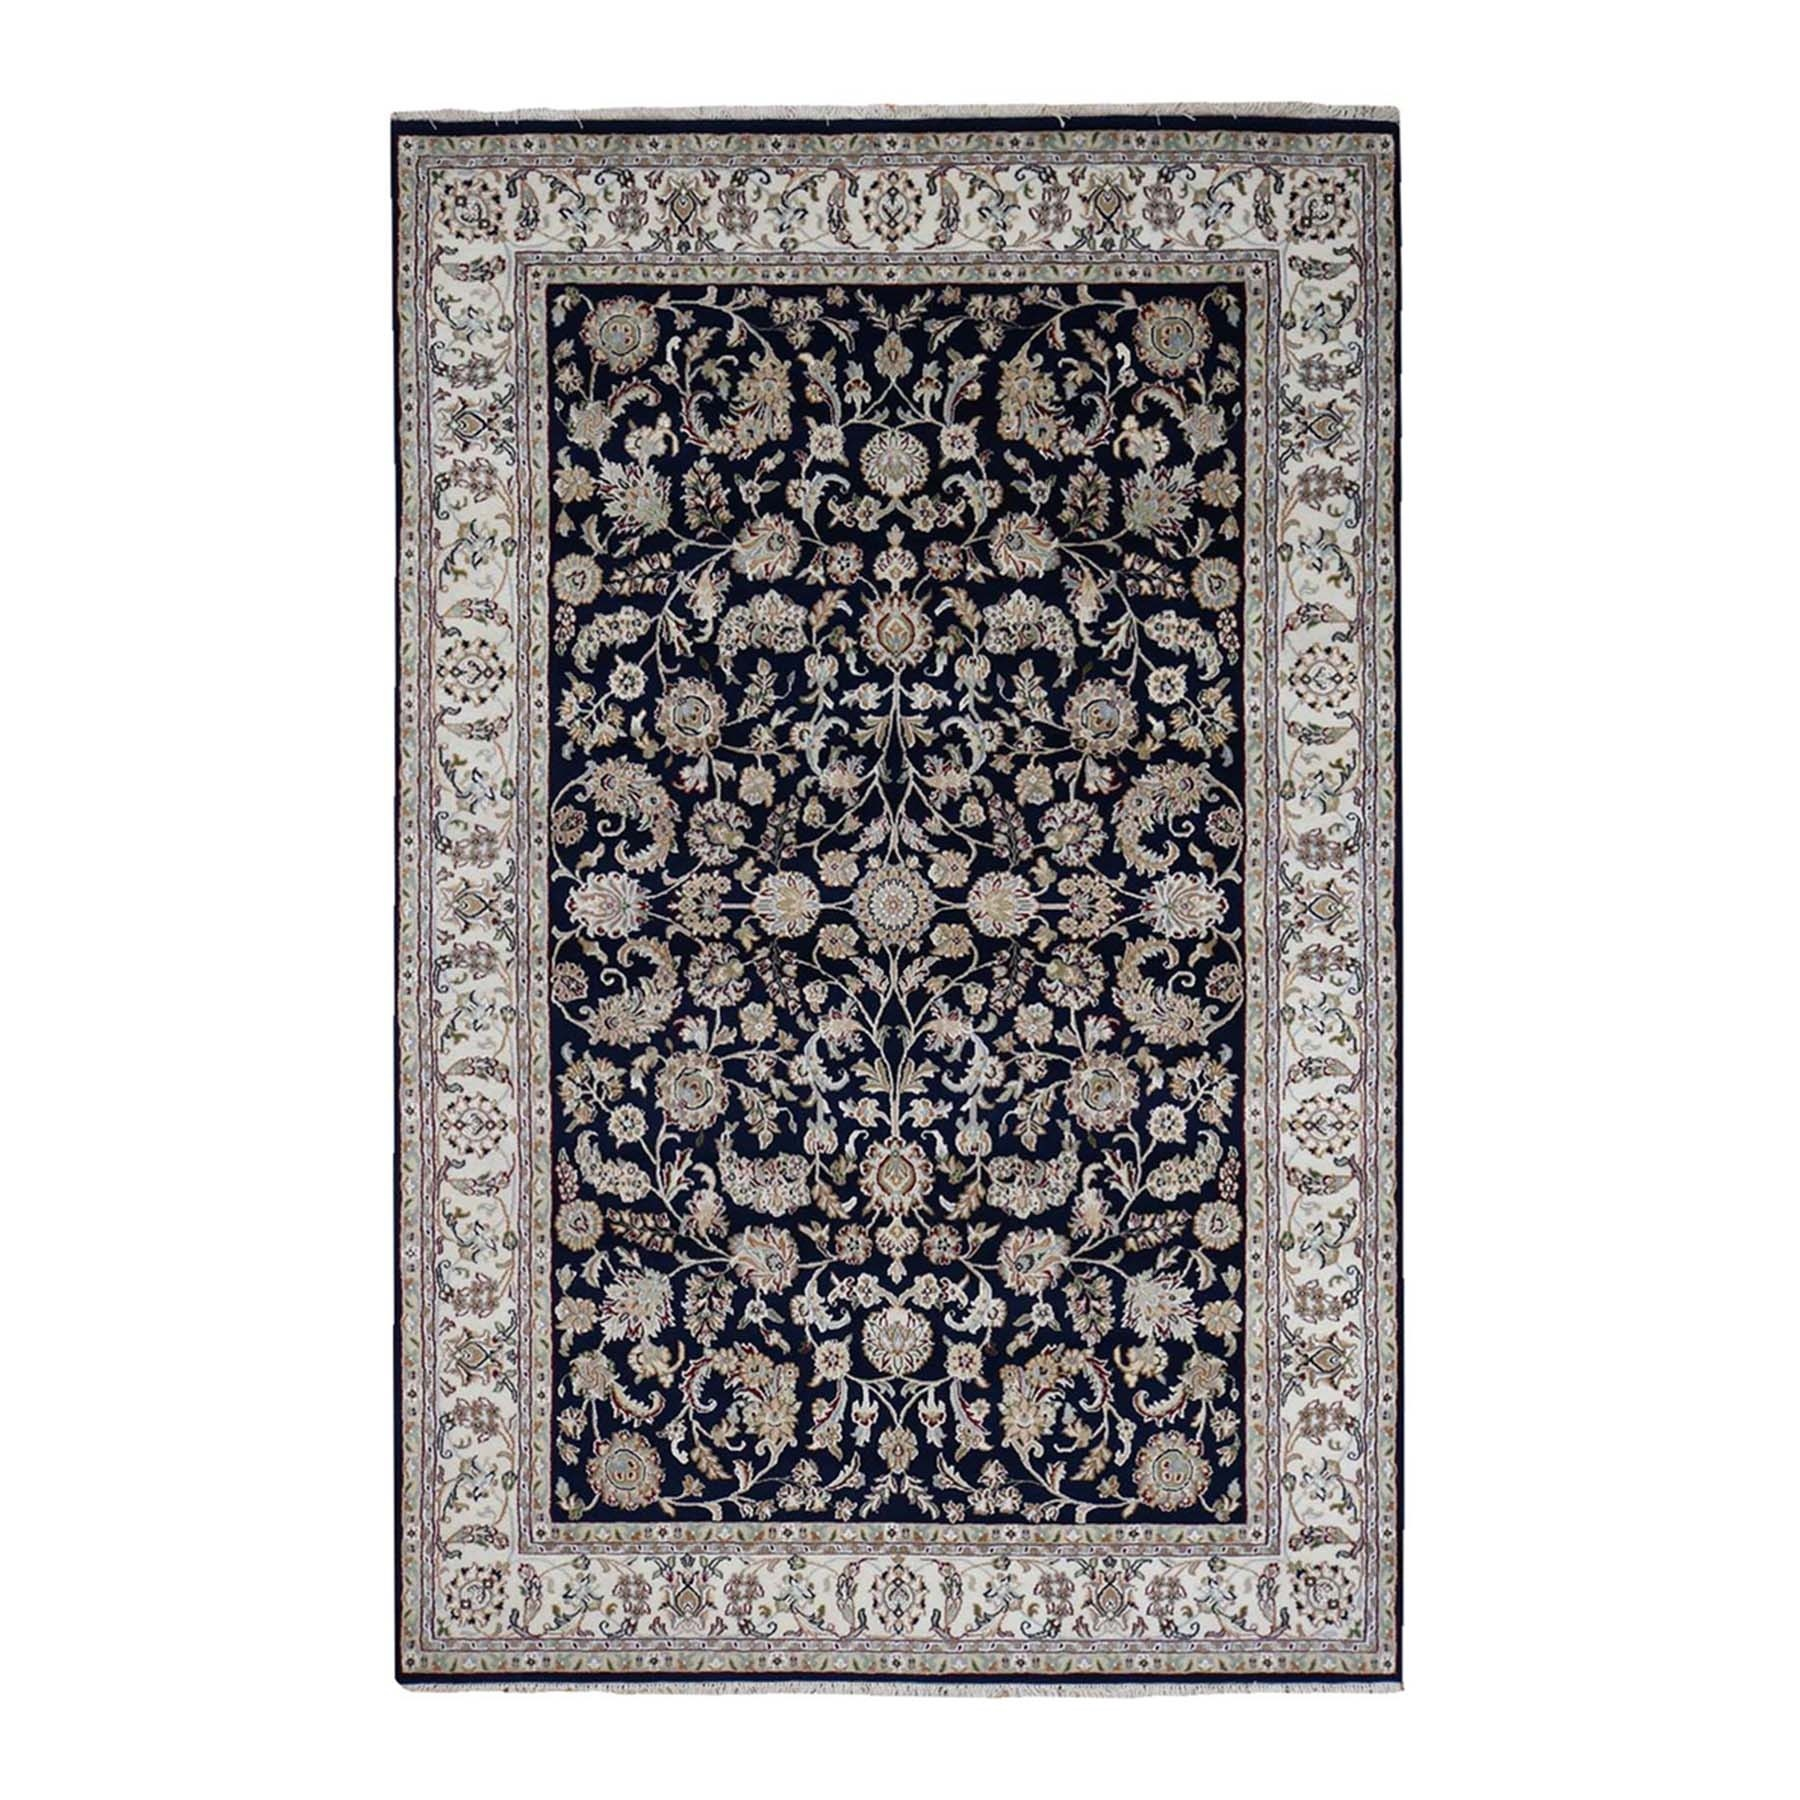 "6'1""x9' Wool and Silk 250 KPSI All Over Design Navy Blue Nain Hand-Knotted Oriental Rug"